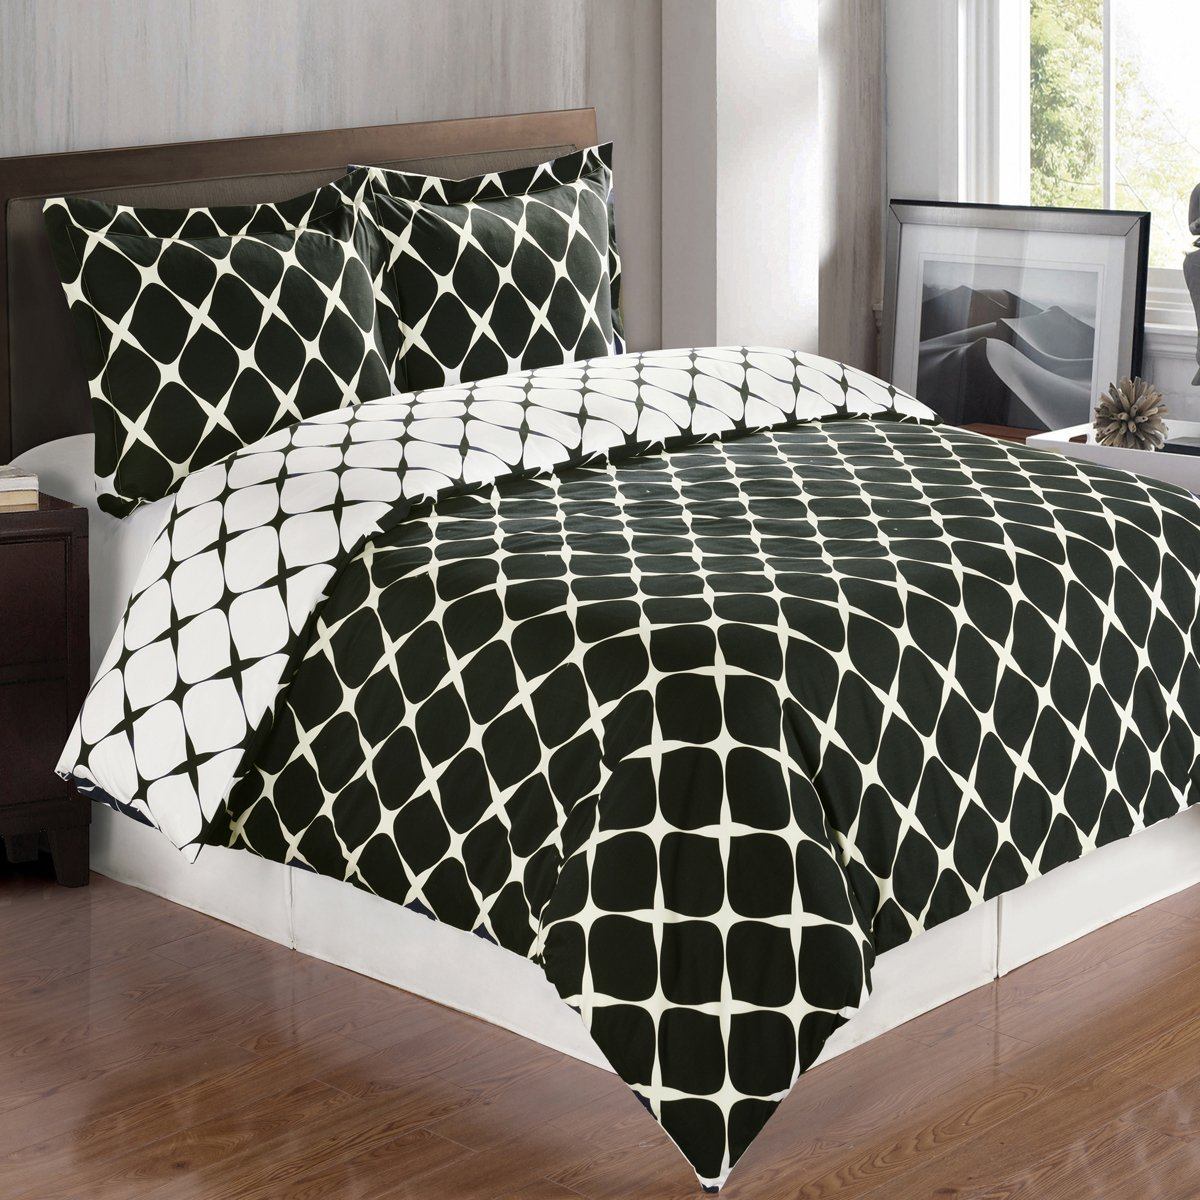 8PC Bloomingdale Black and White Full Size Bed in a Bag set Include: 3pc Duvet Cover Set + 4pc sheet Set+ 1pc Down Alternative Comforter